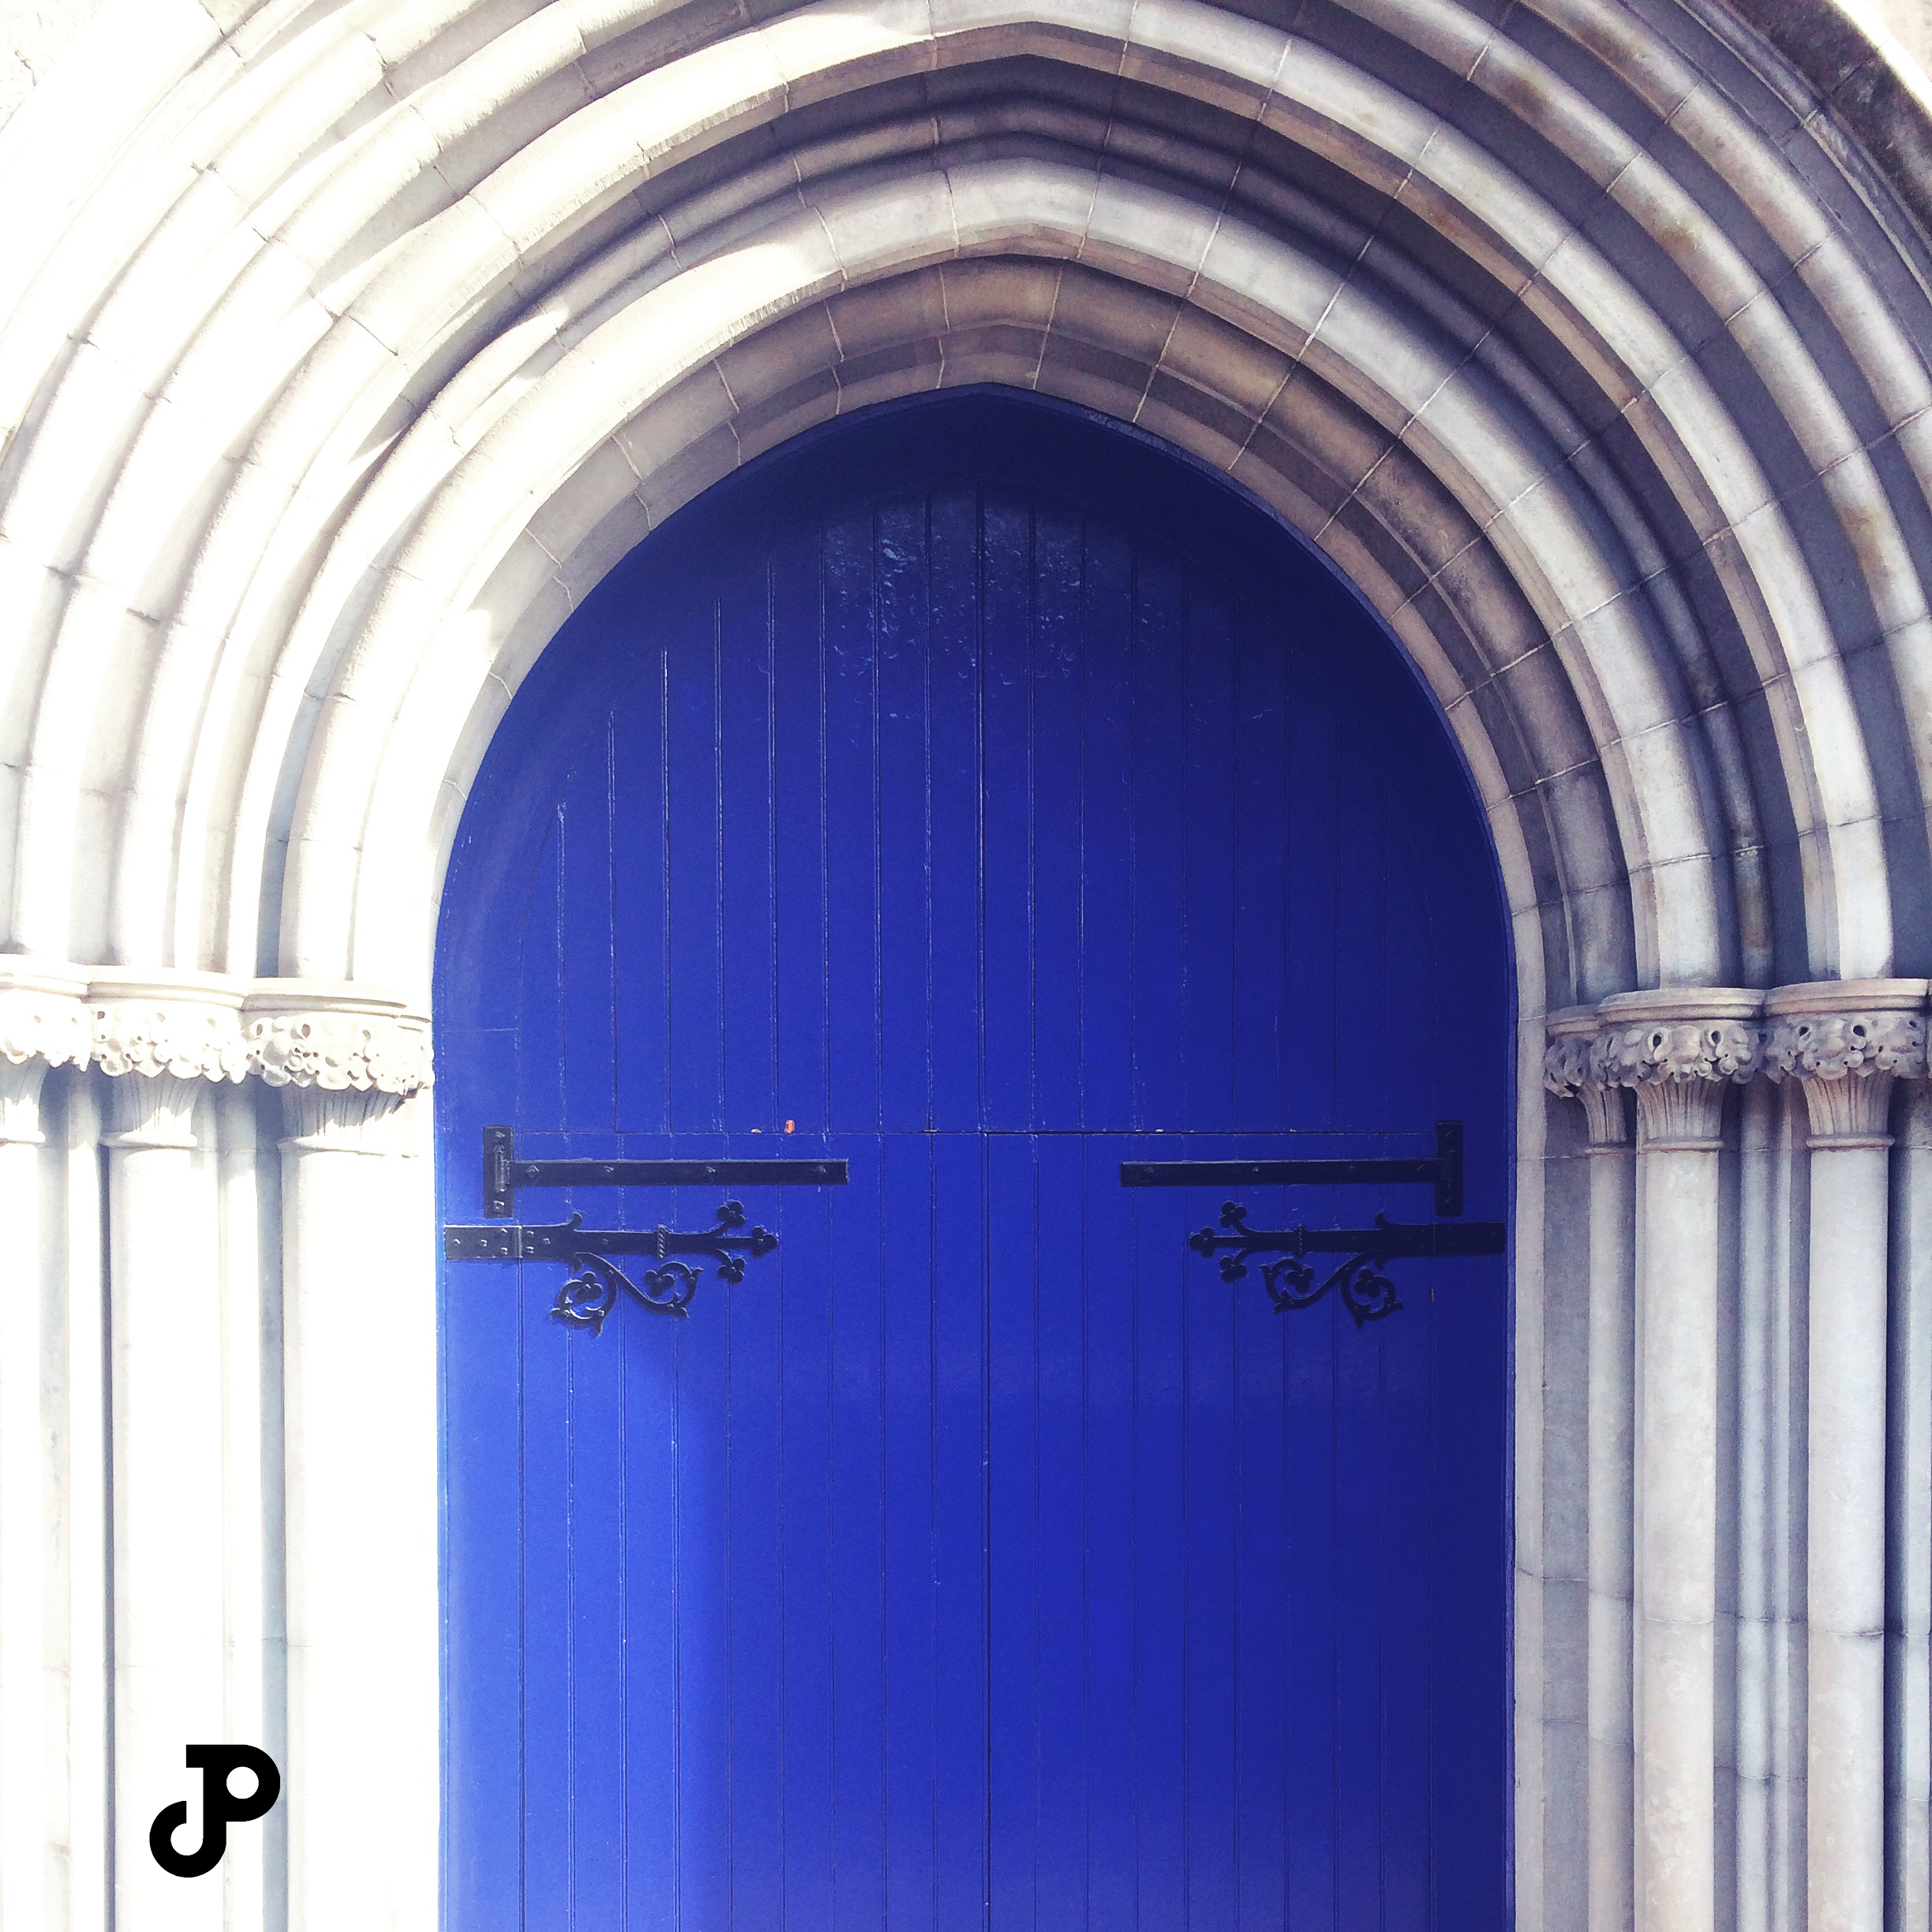 an arching, medieval door, painted a vibrant shade of blue, at Saint Patrick's Cathedral